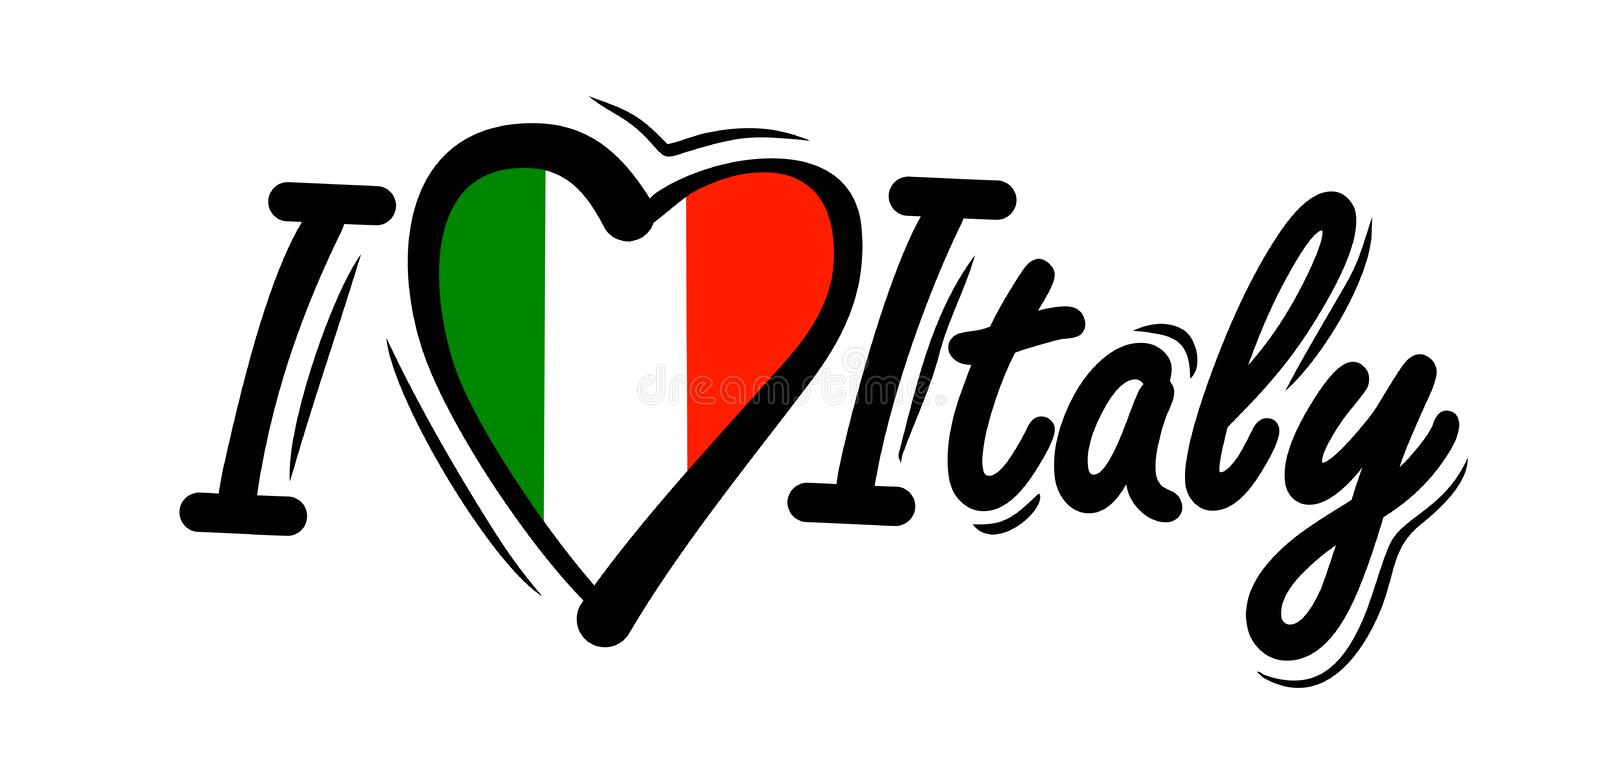 I love italy vector stock vector illustration of national 36132632 download i love italy vector stock vector illustration of national 36132632 altavistaventures Image collections